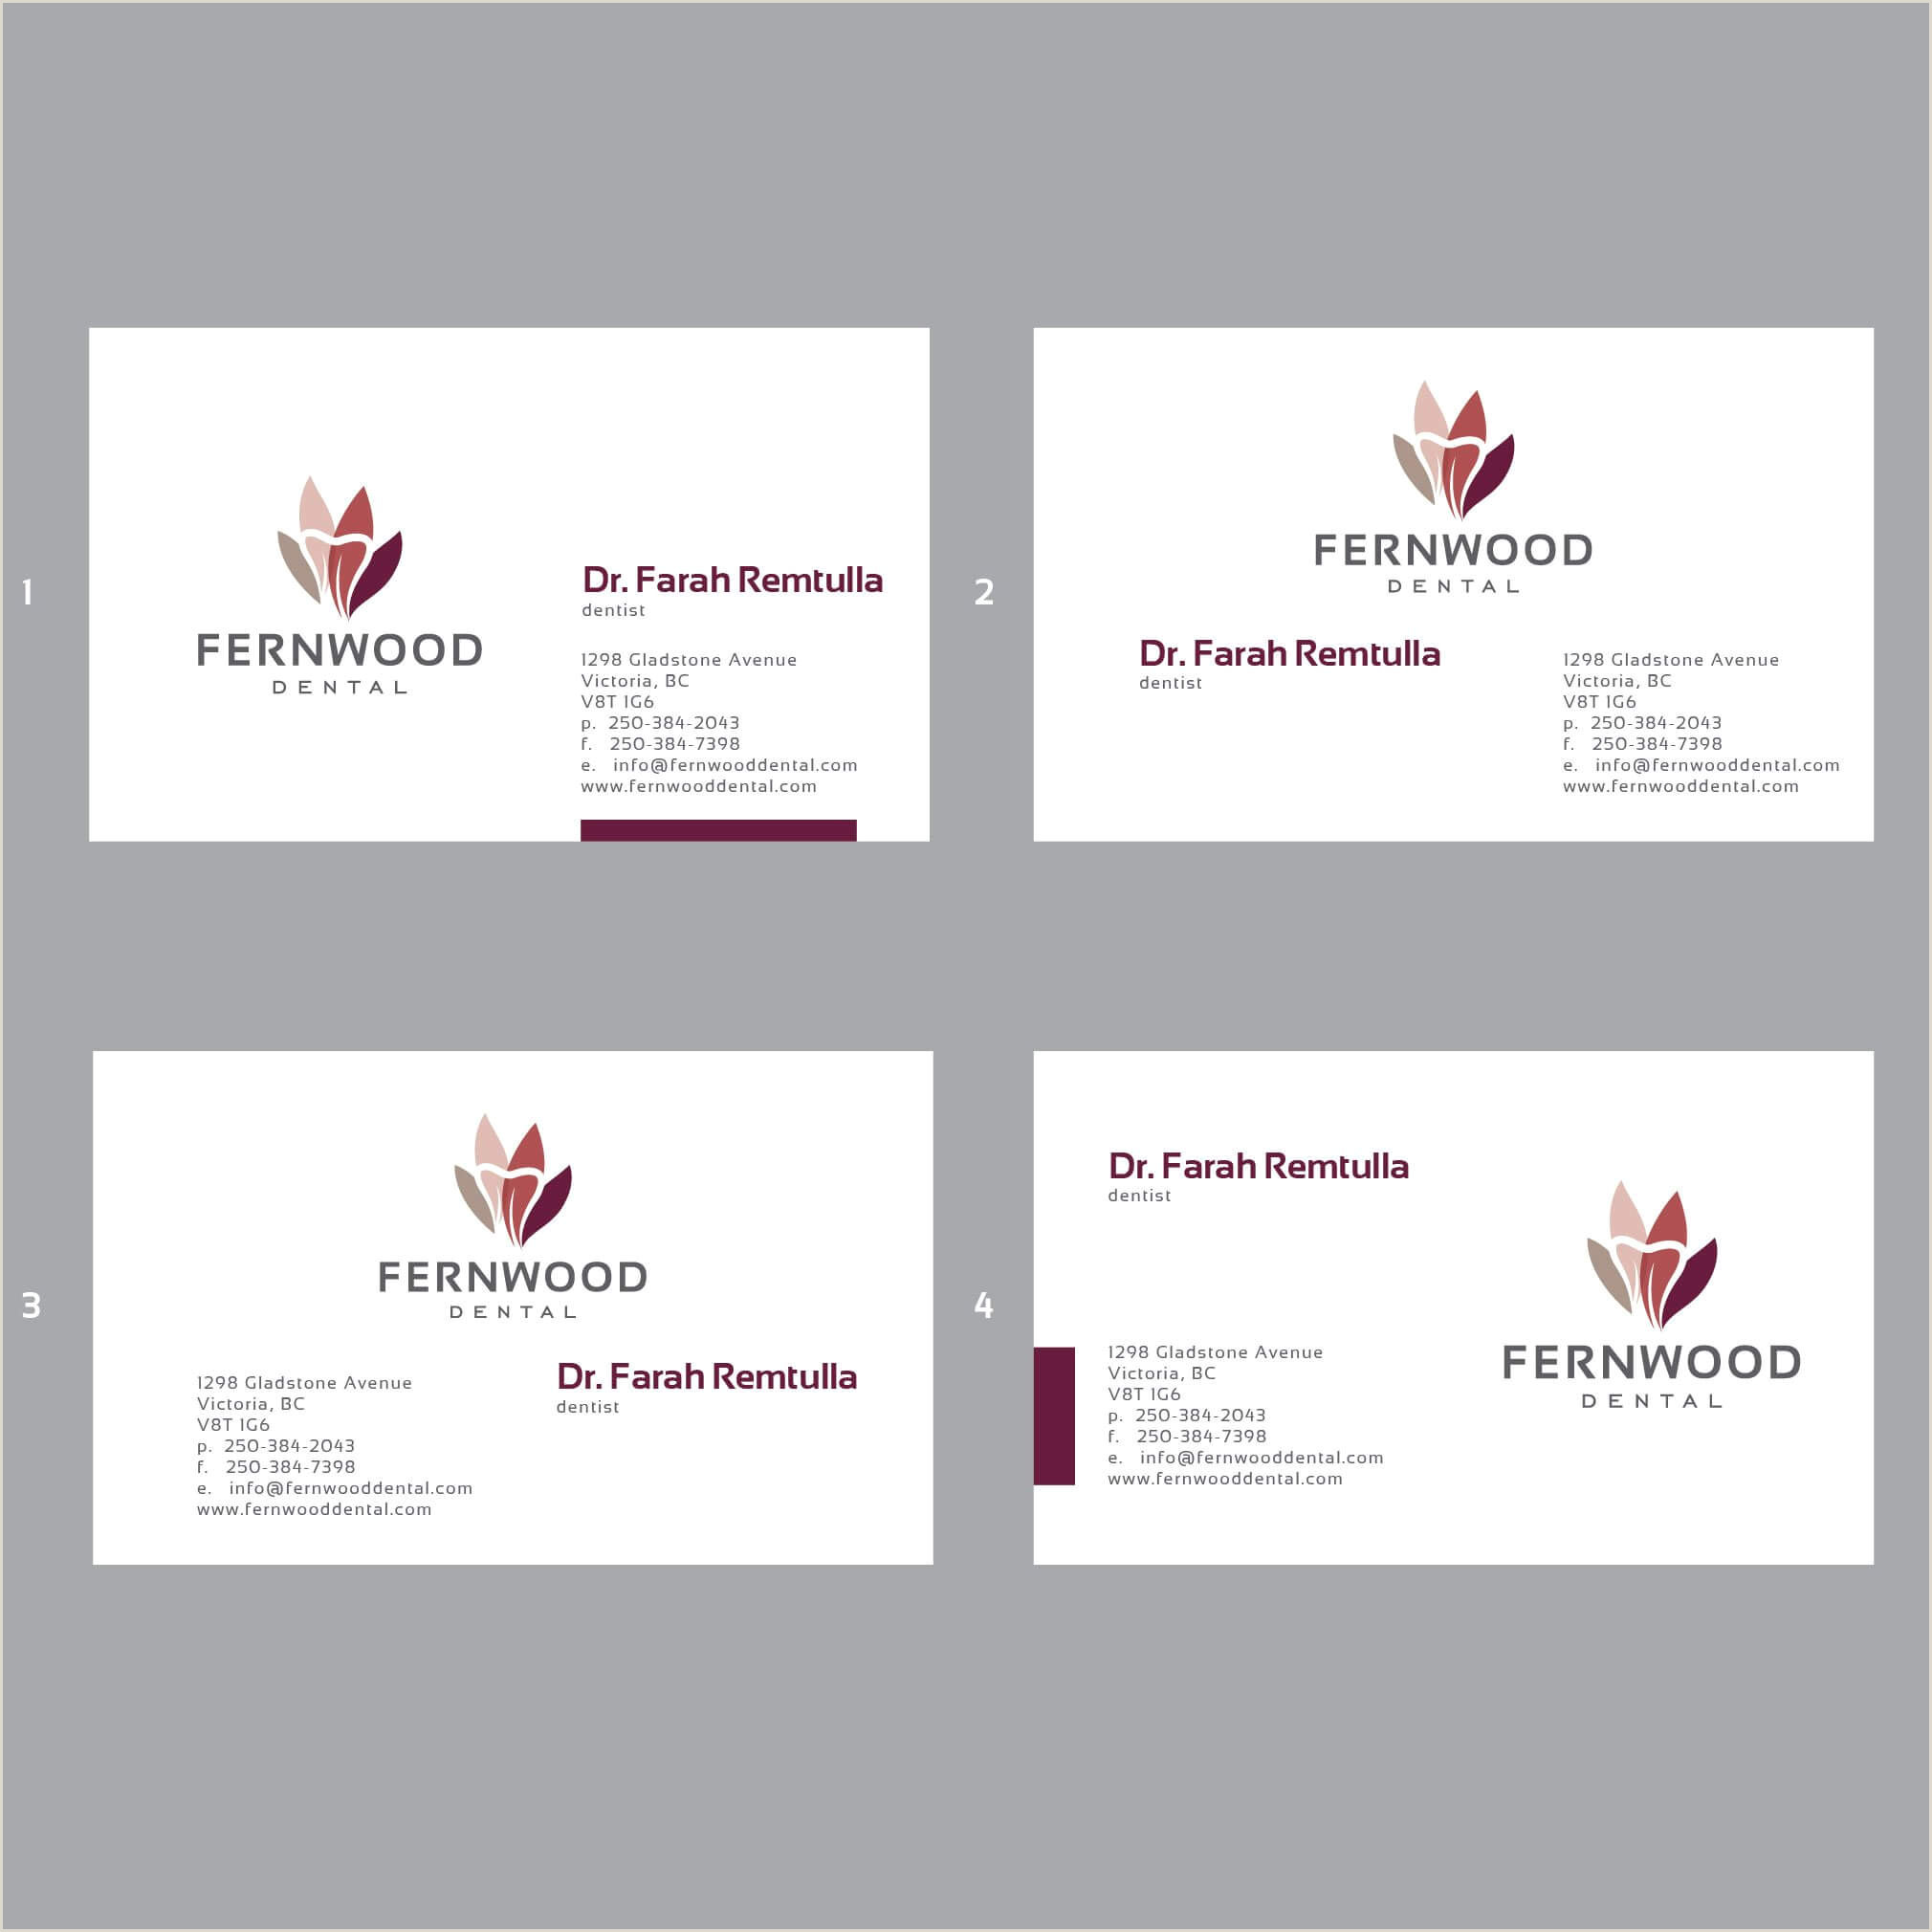 Best Business Cards Online With My Logo Crowdspring Logo & Business Card